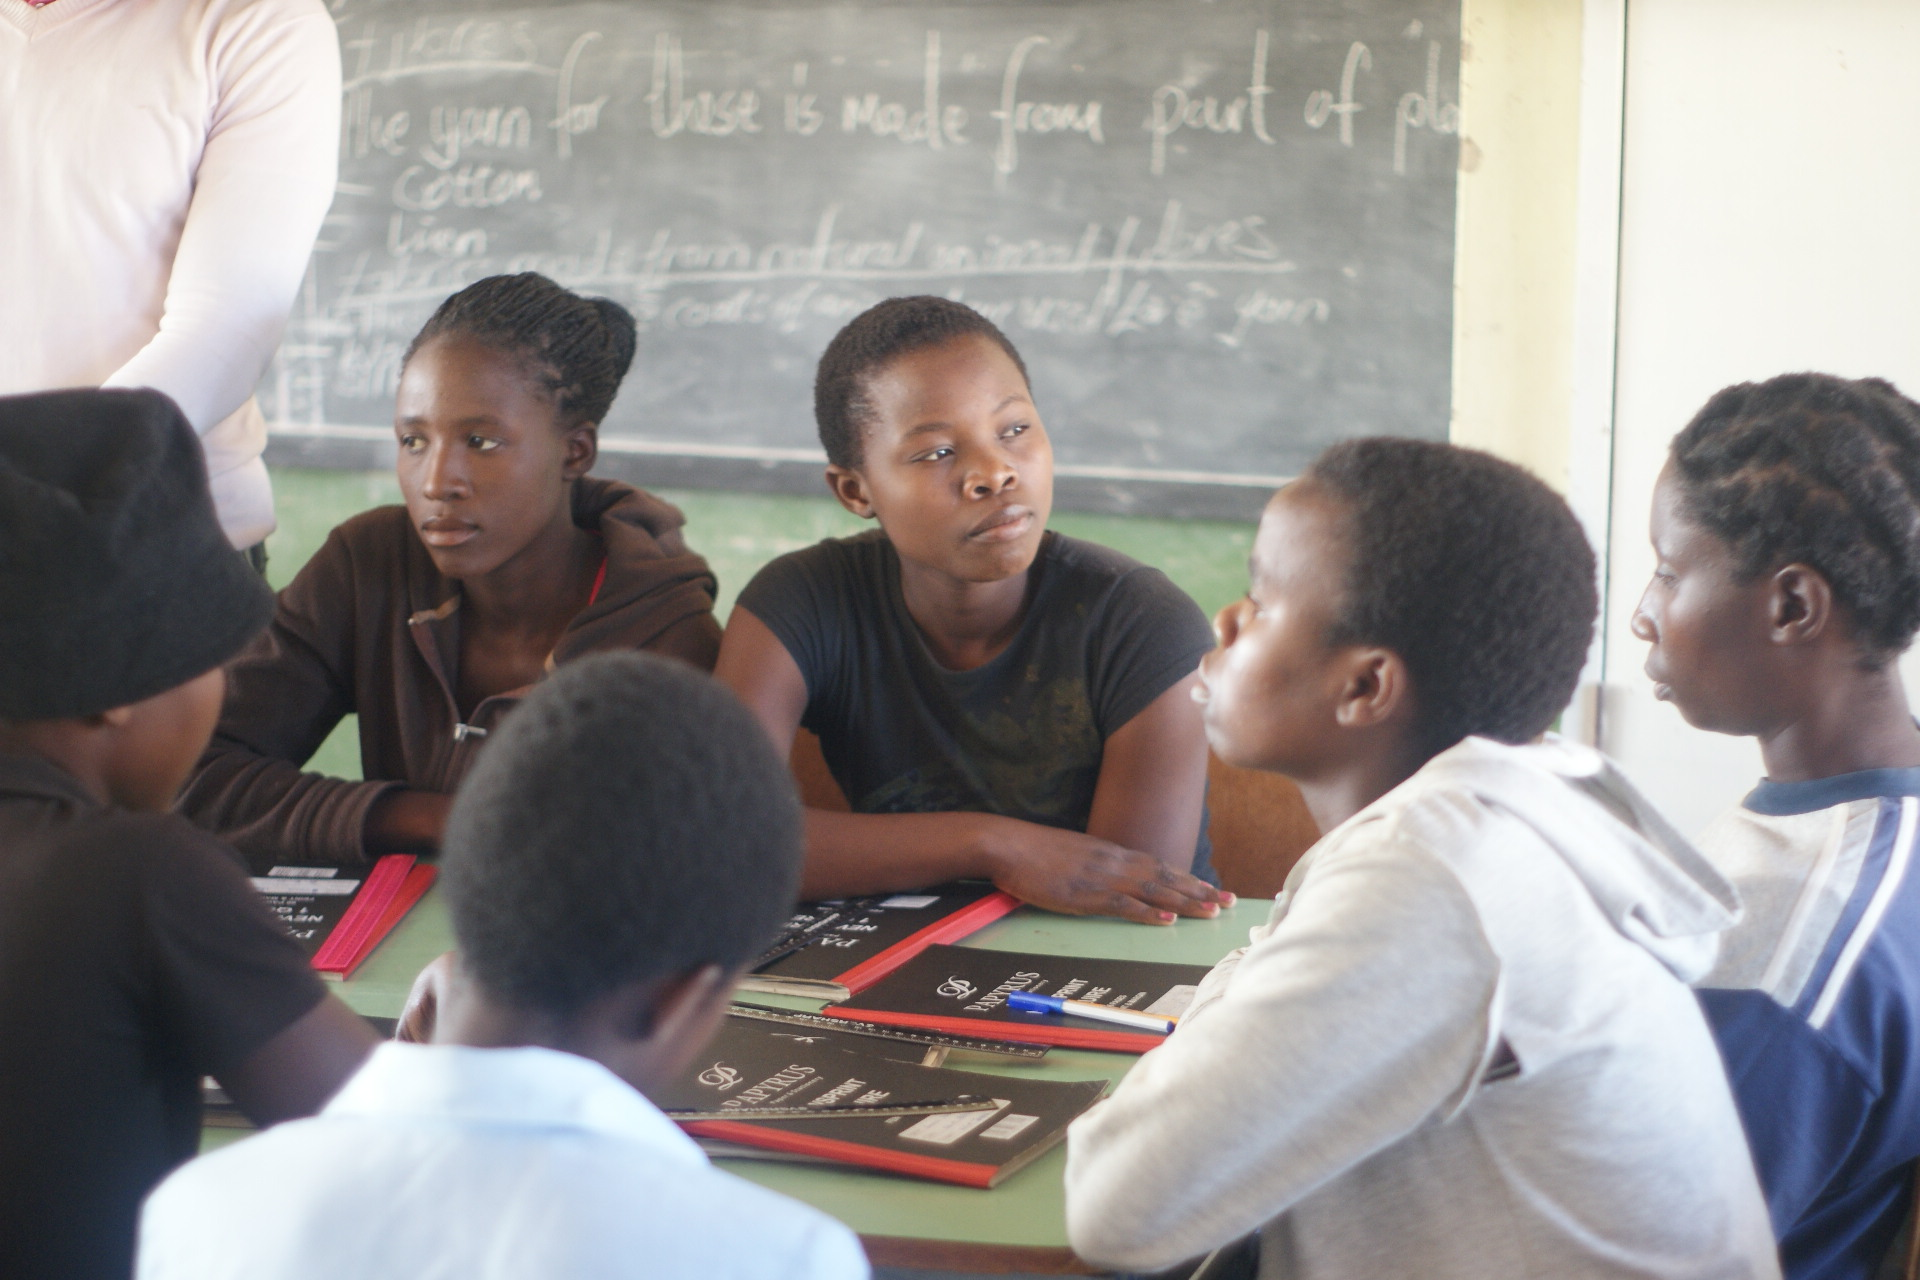 USAID's Zimbabwe Works program empowers young women through employment and entrepreneurship training and links them to internshi